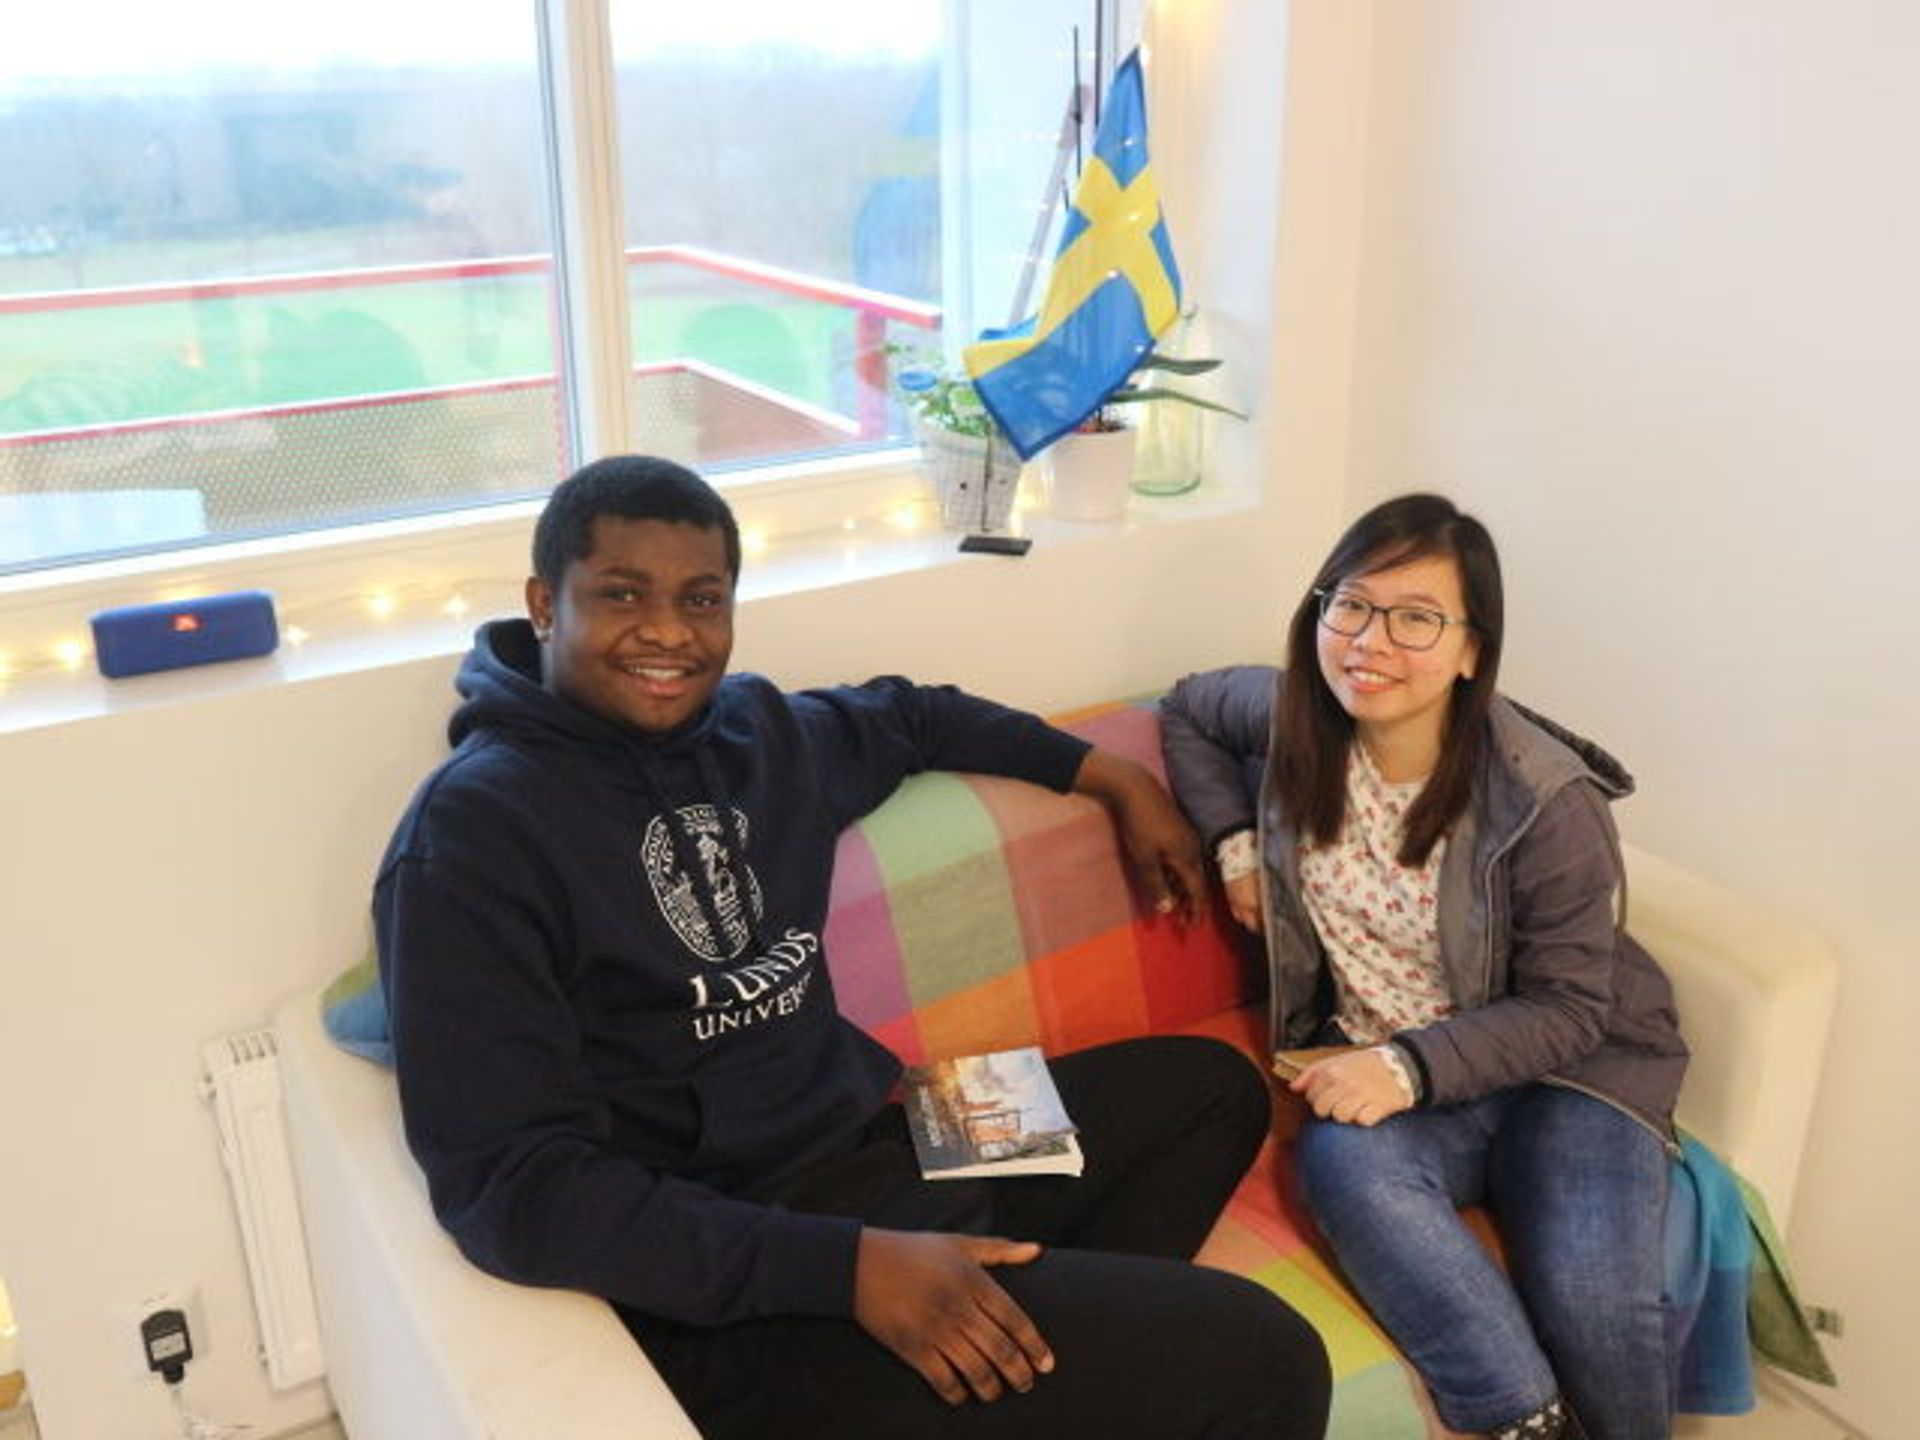 Two students sit on a sofa together.